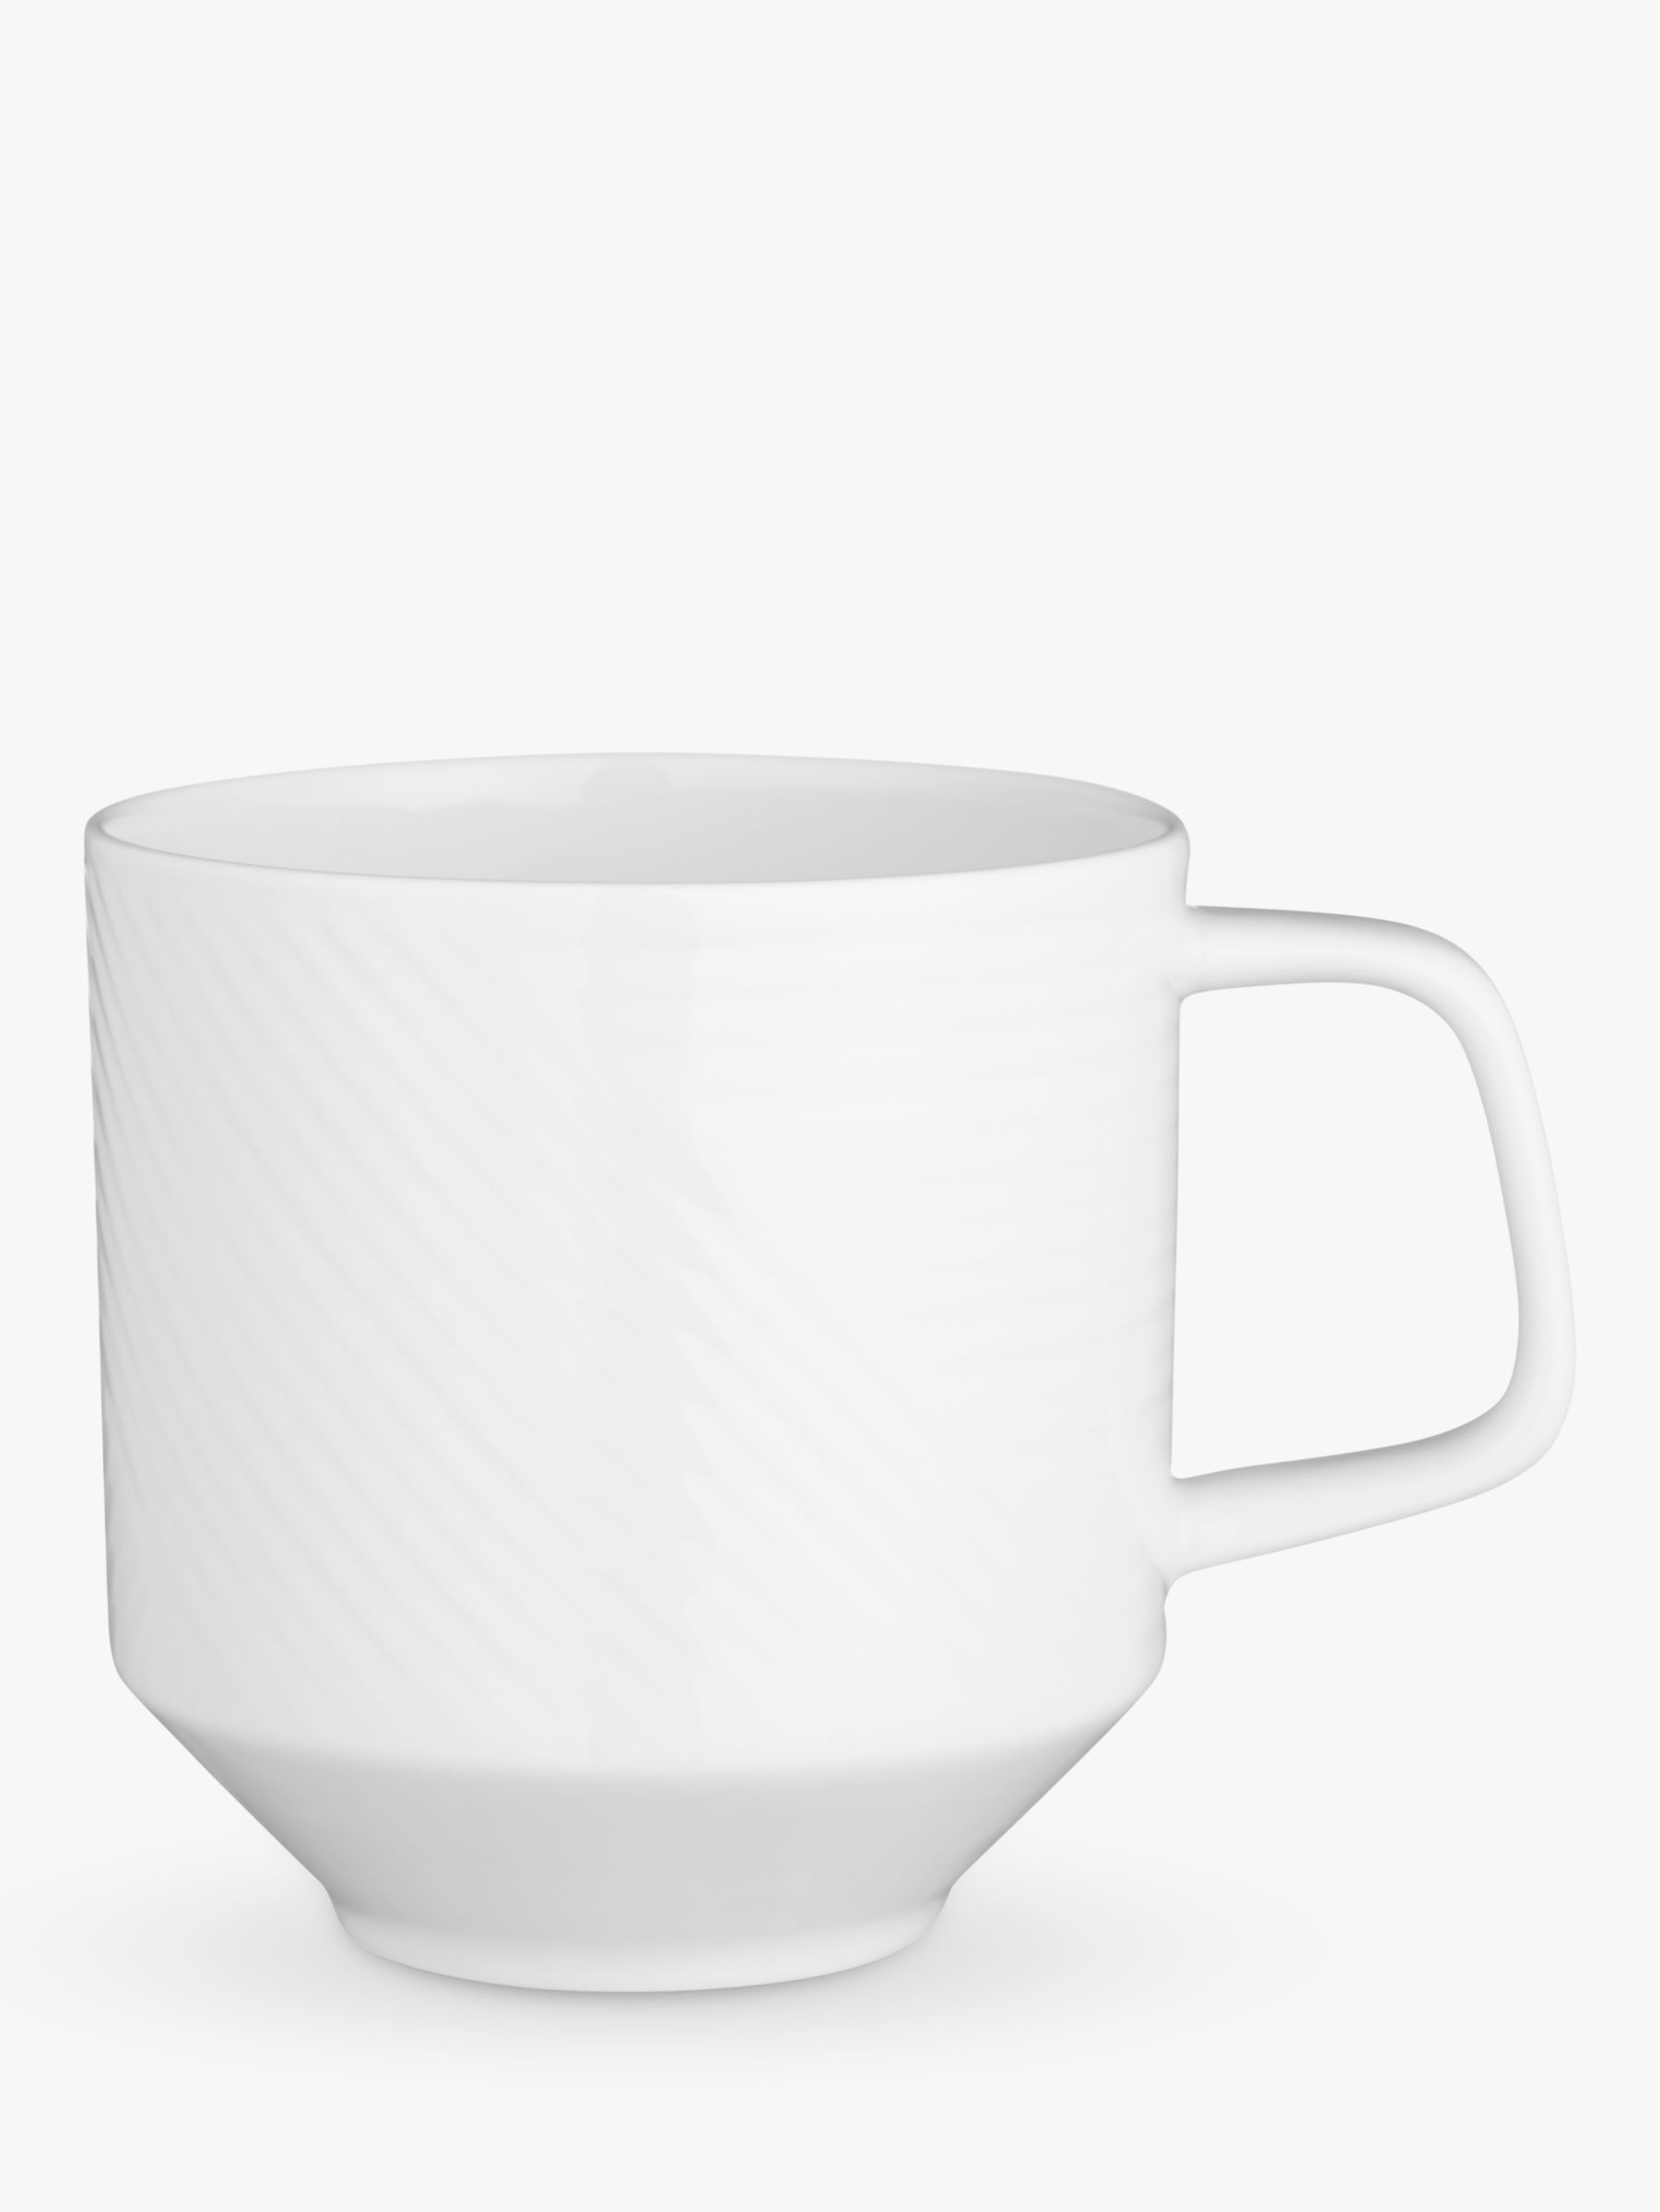 Design Project by John Lewis Design Project by John Lewis No.098 Mug